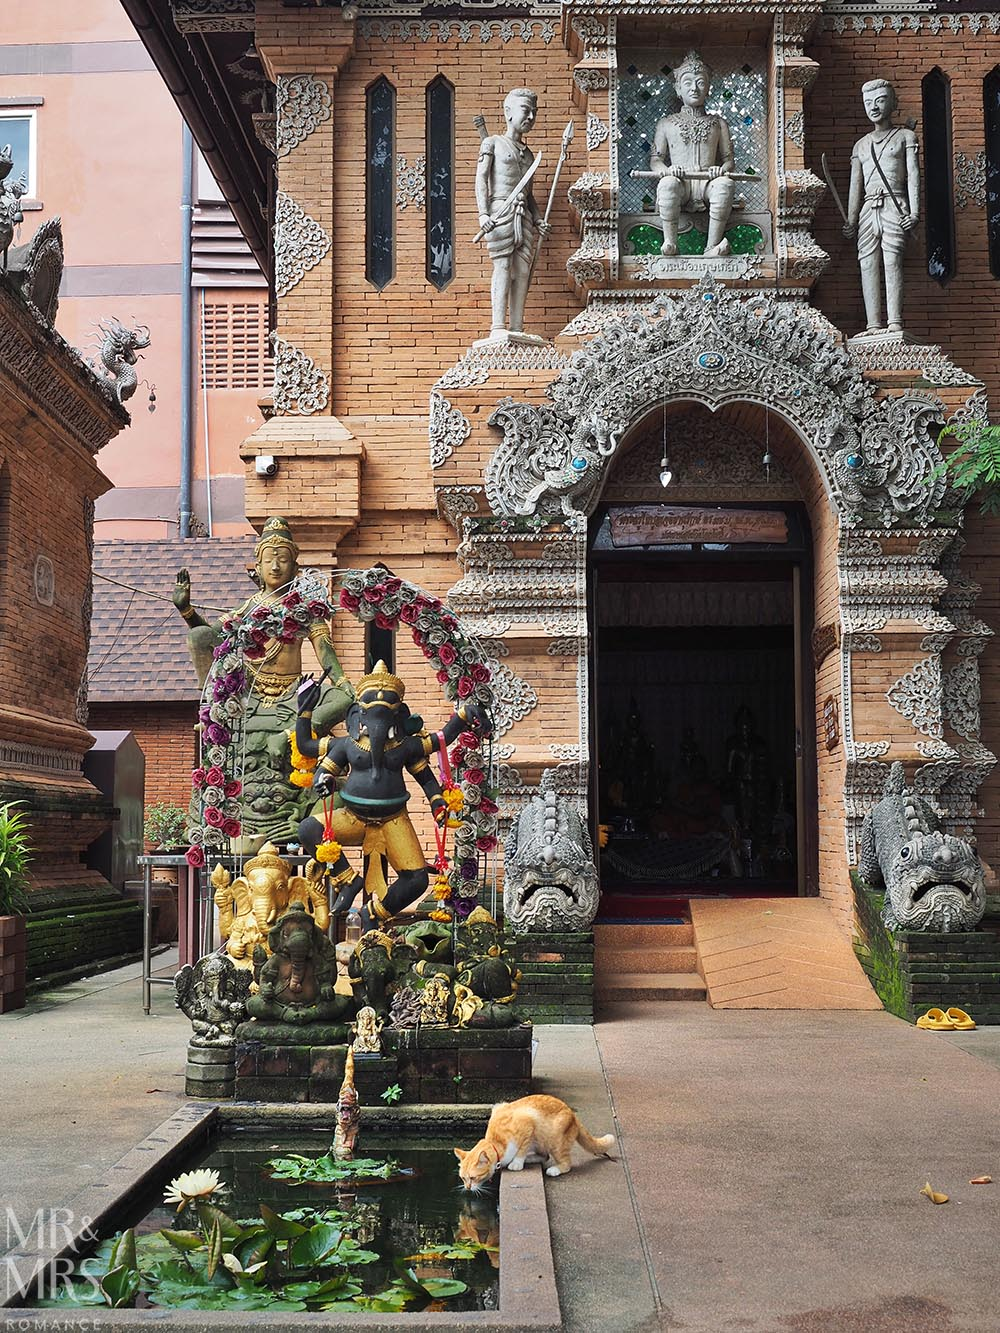 Bangkok and Chiang Mai, Thailand - Weekly Edition - temple cat